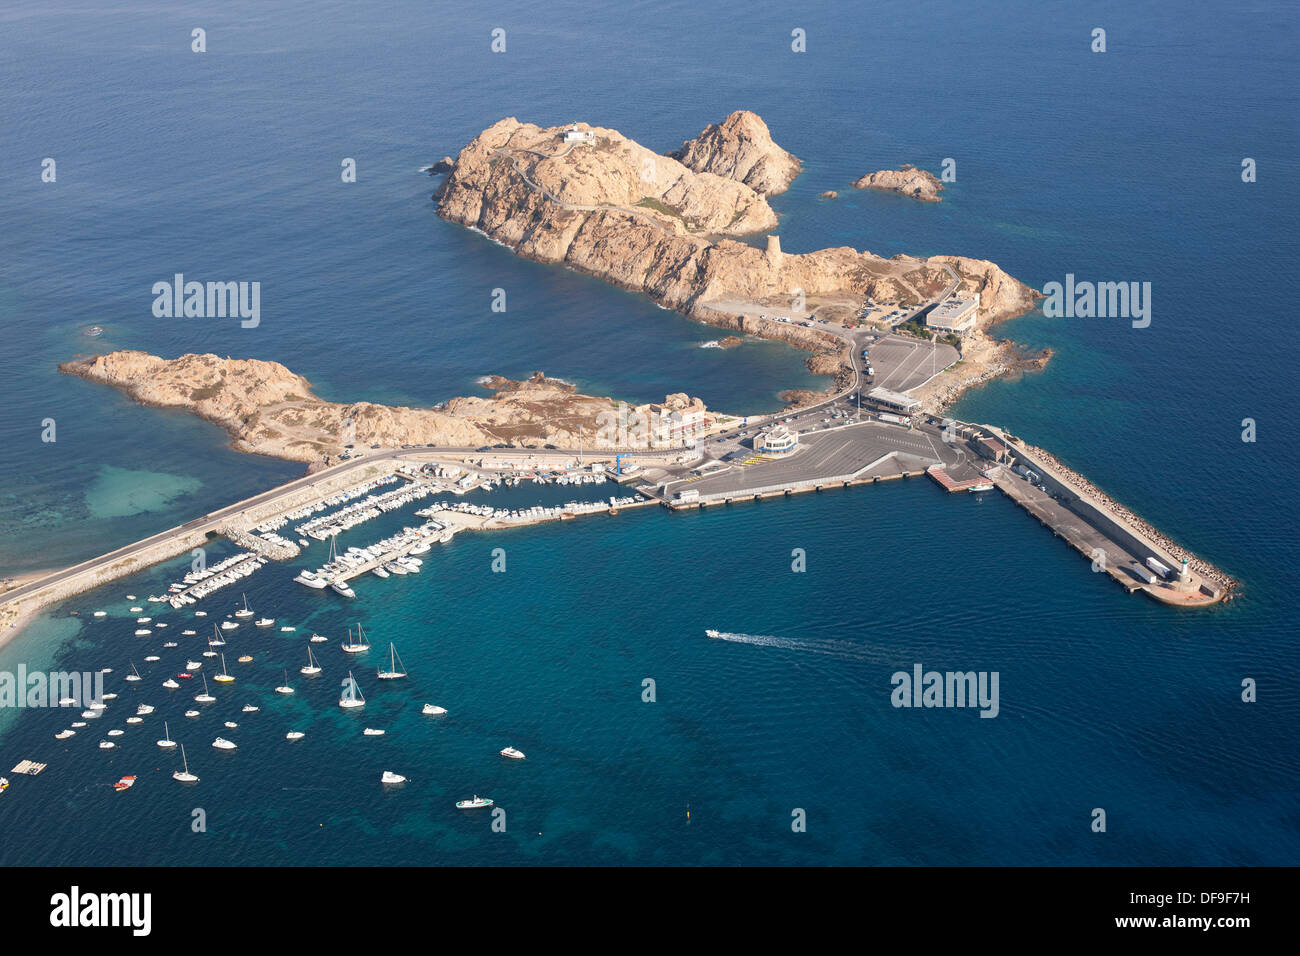 ÎLE ROUSSE MARINA (aerial view). The pier and ferry terminal. Corsica, France. - Stock Image